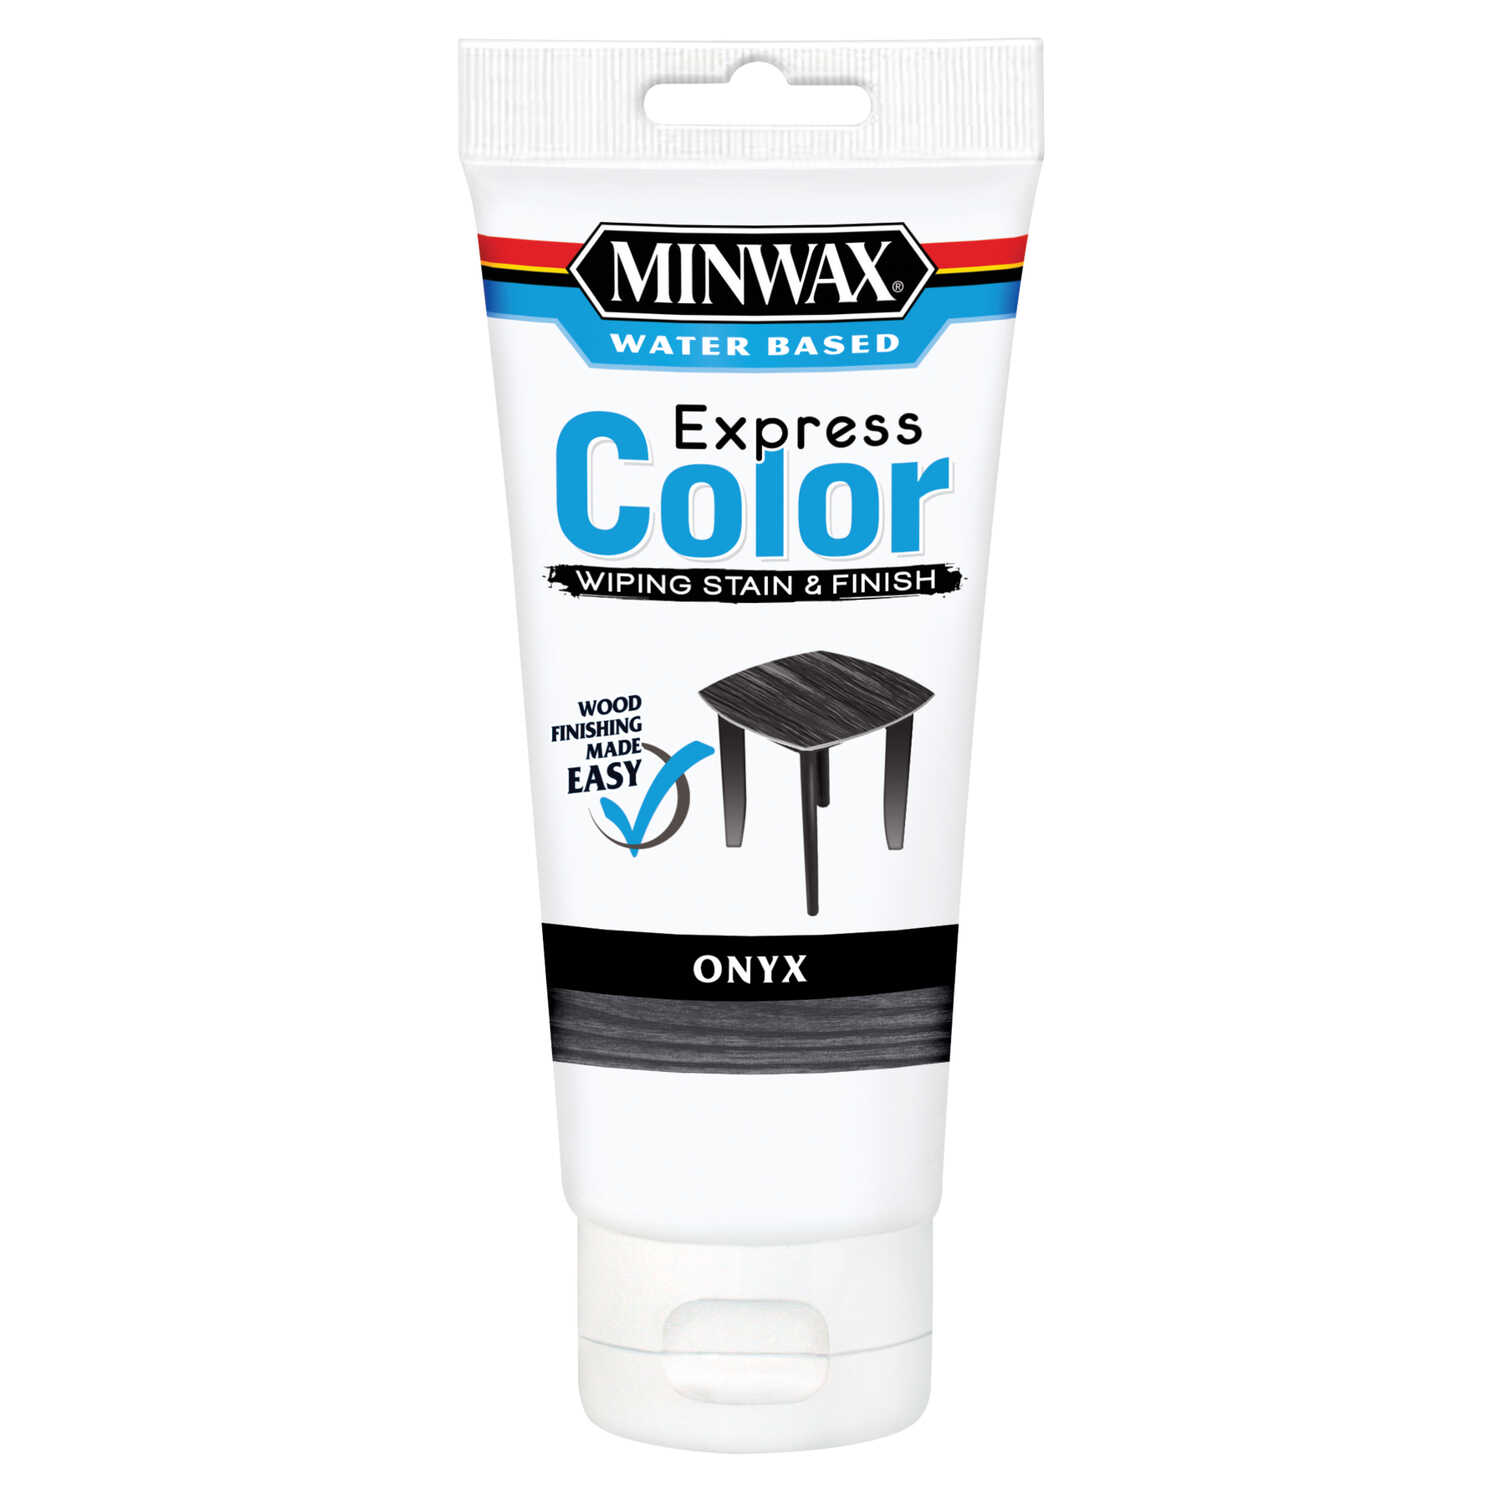 Minwax Express Color Semi-Transparent Onyx Water-Based